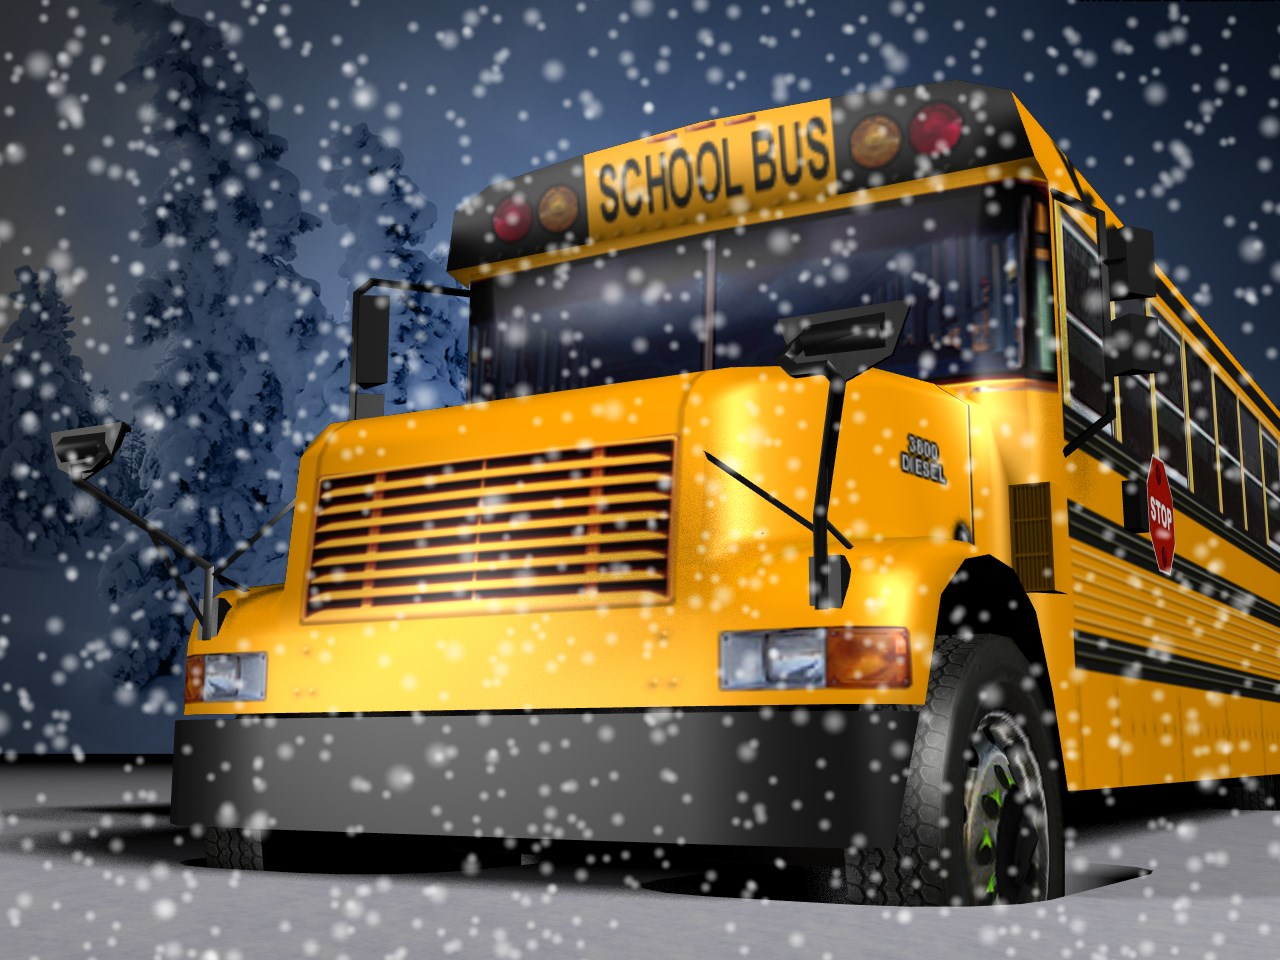 2-6 snow over school bus_1549457990227.jpg.jpg